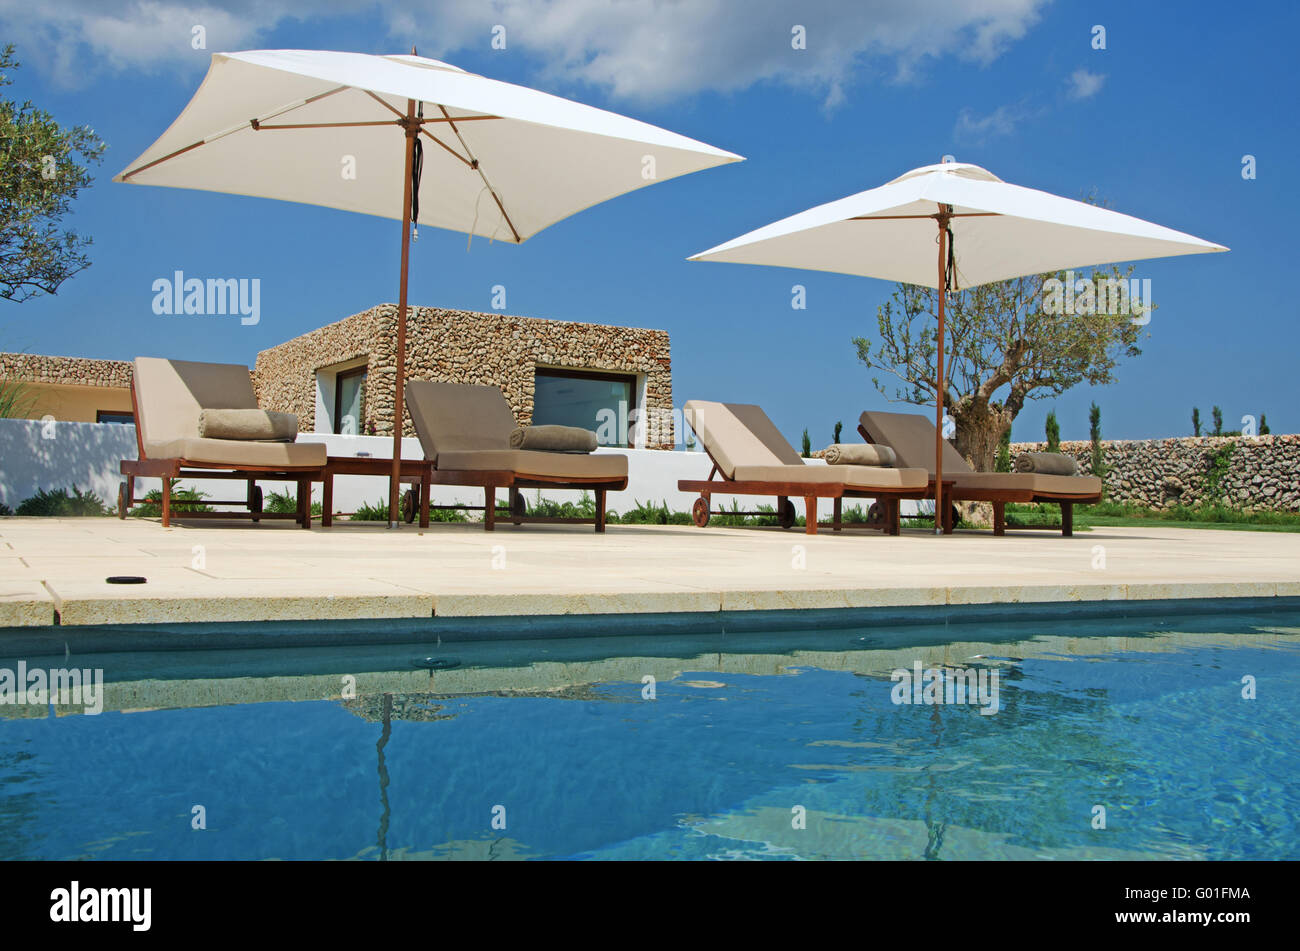 Menorca, Balearic Islands: lawn, pool, olive trees, deckchairs and beach umbrellas in the menorcan countryside - Stock Image